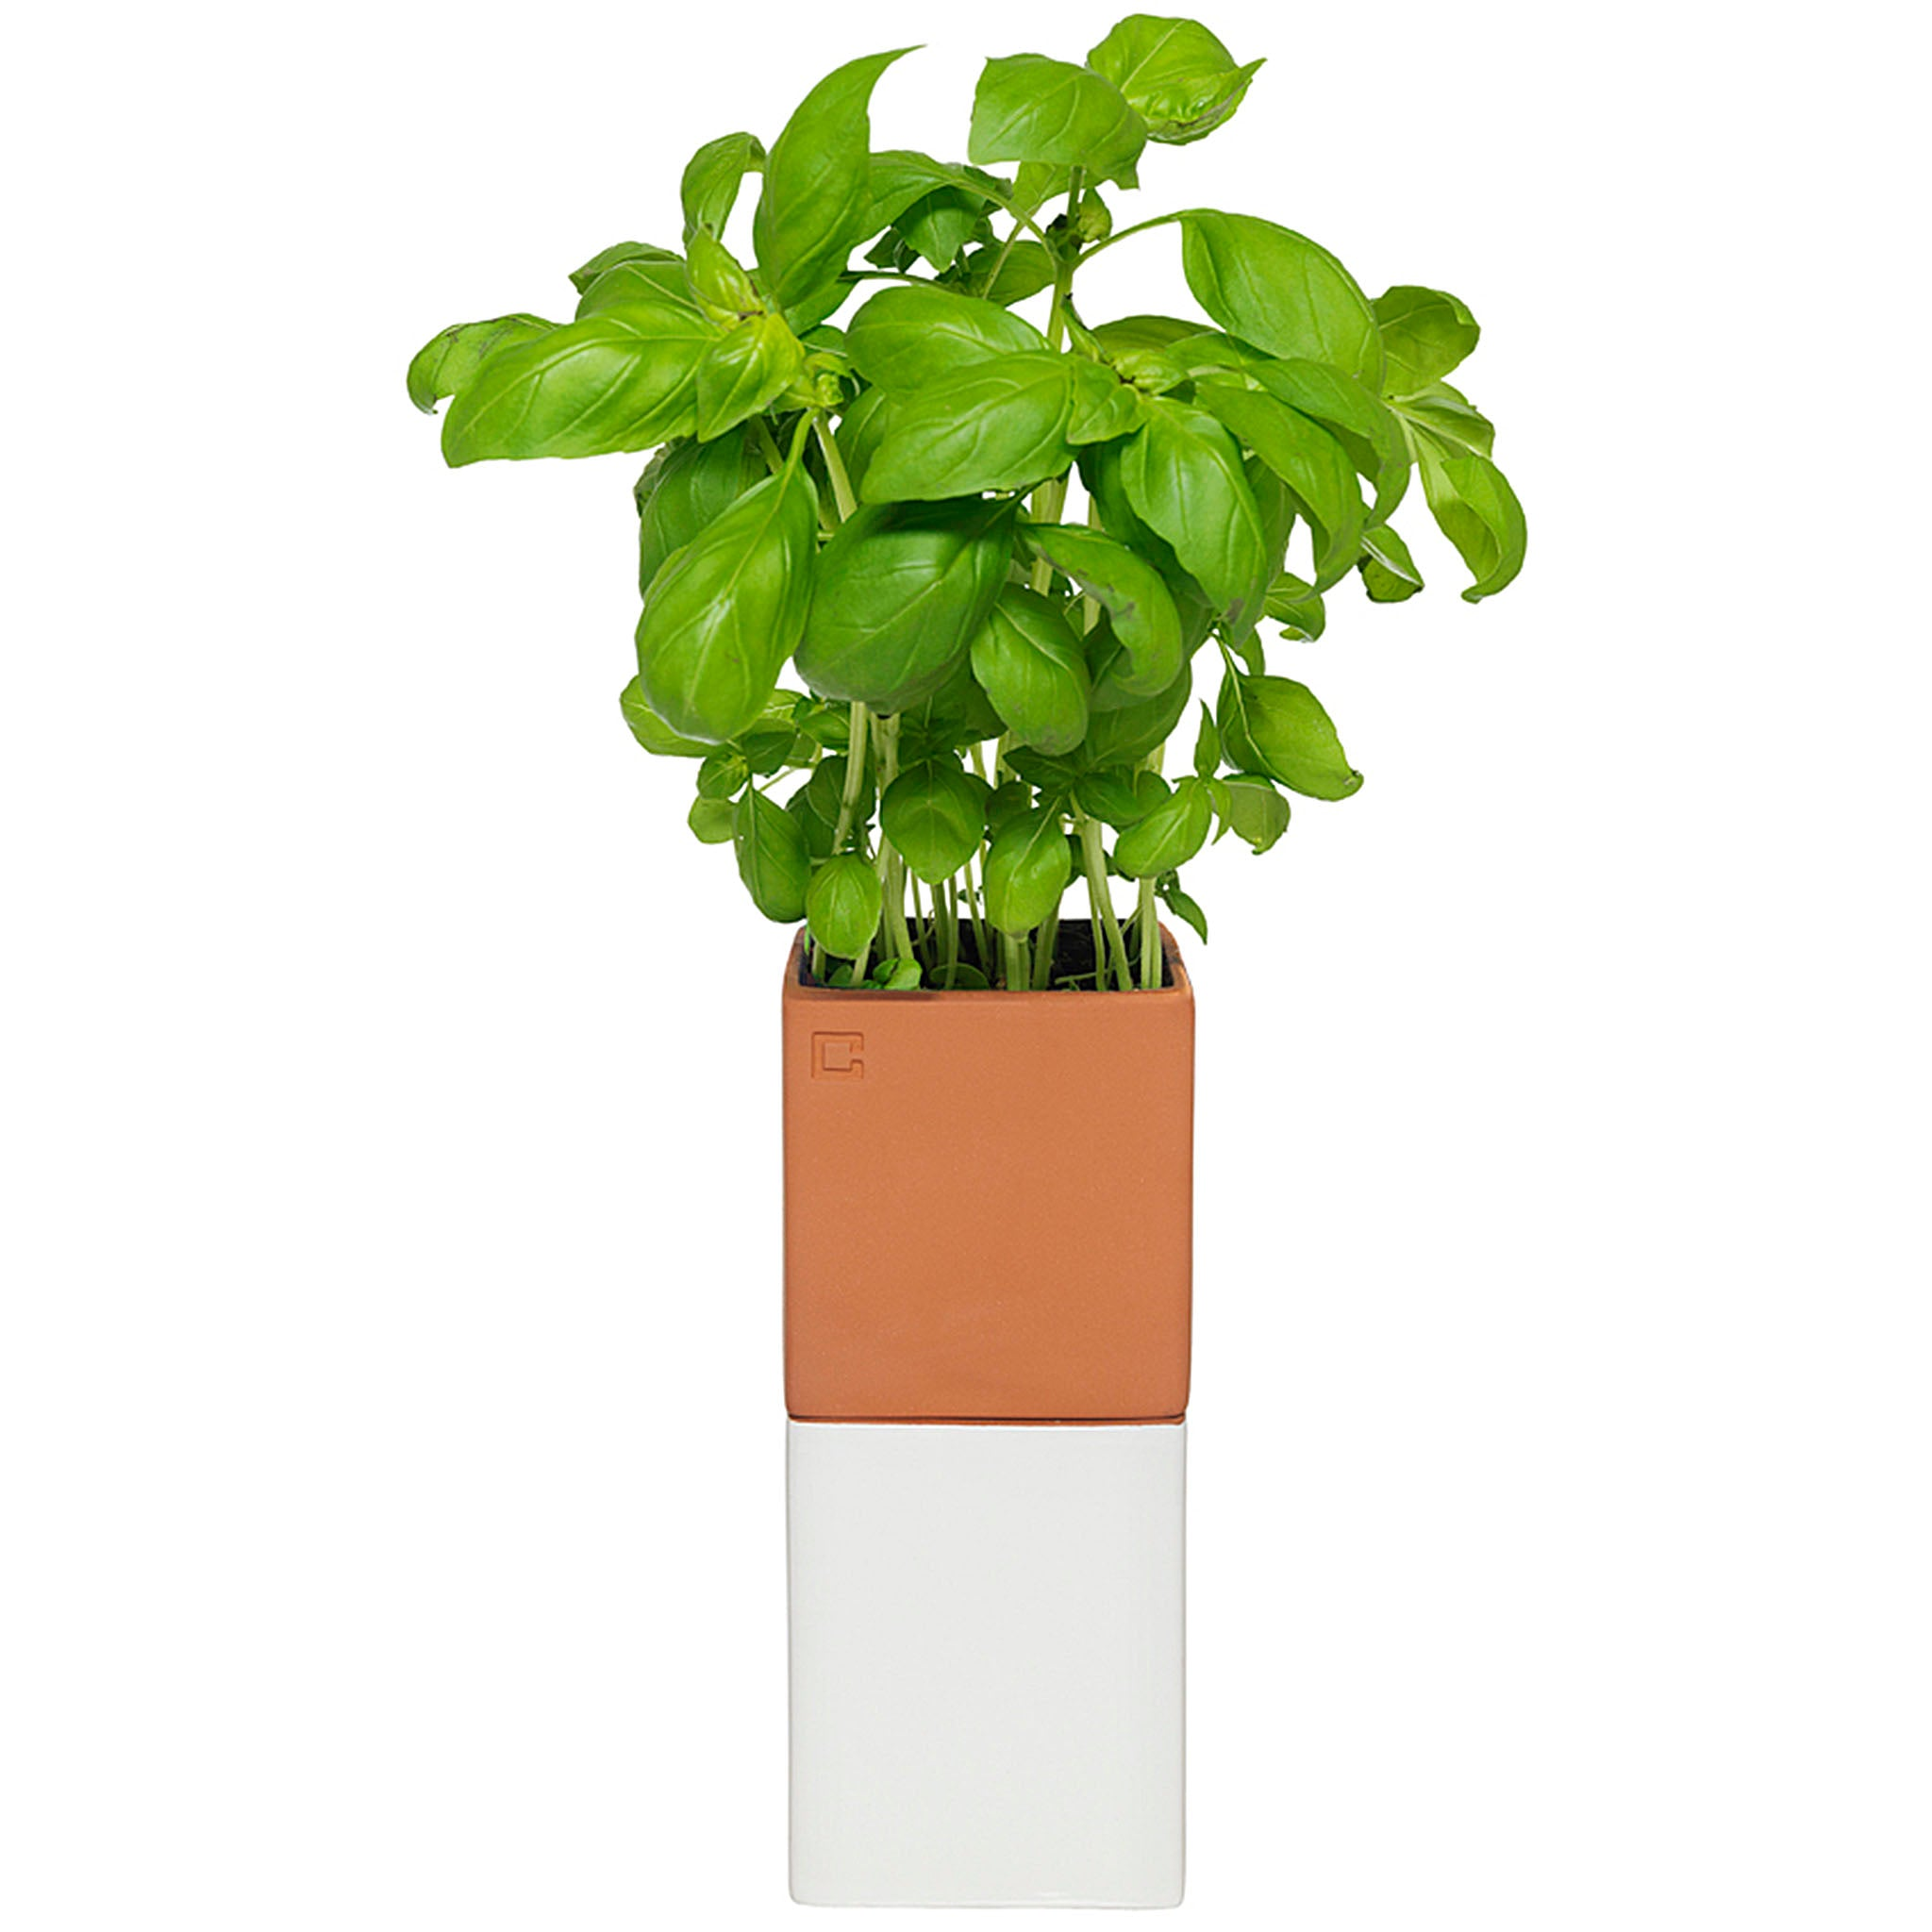 Evergreen is a self-watering pot which is ideal for anyone who doesn't have a green thumb or who has other priorities. The Evergreen is designed to keep herbs fresher and more delicious in just a few days.